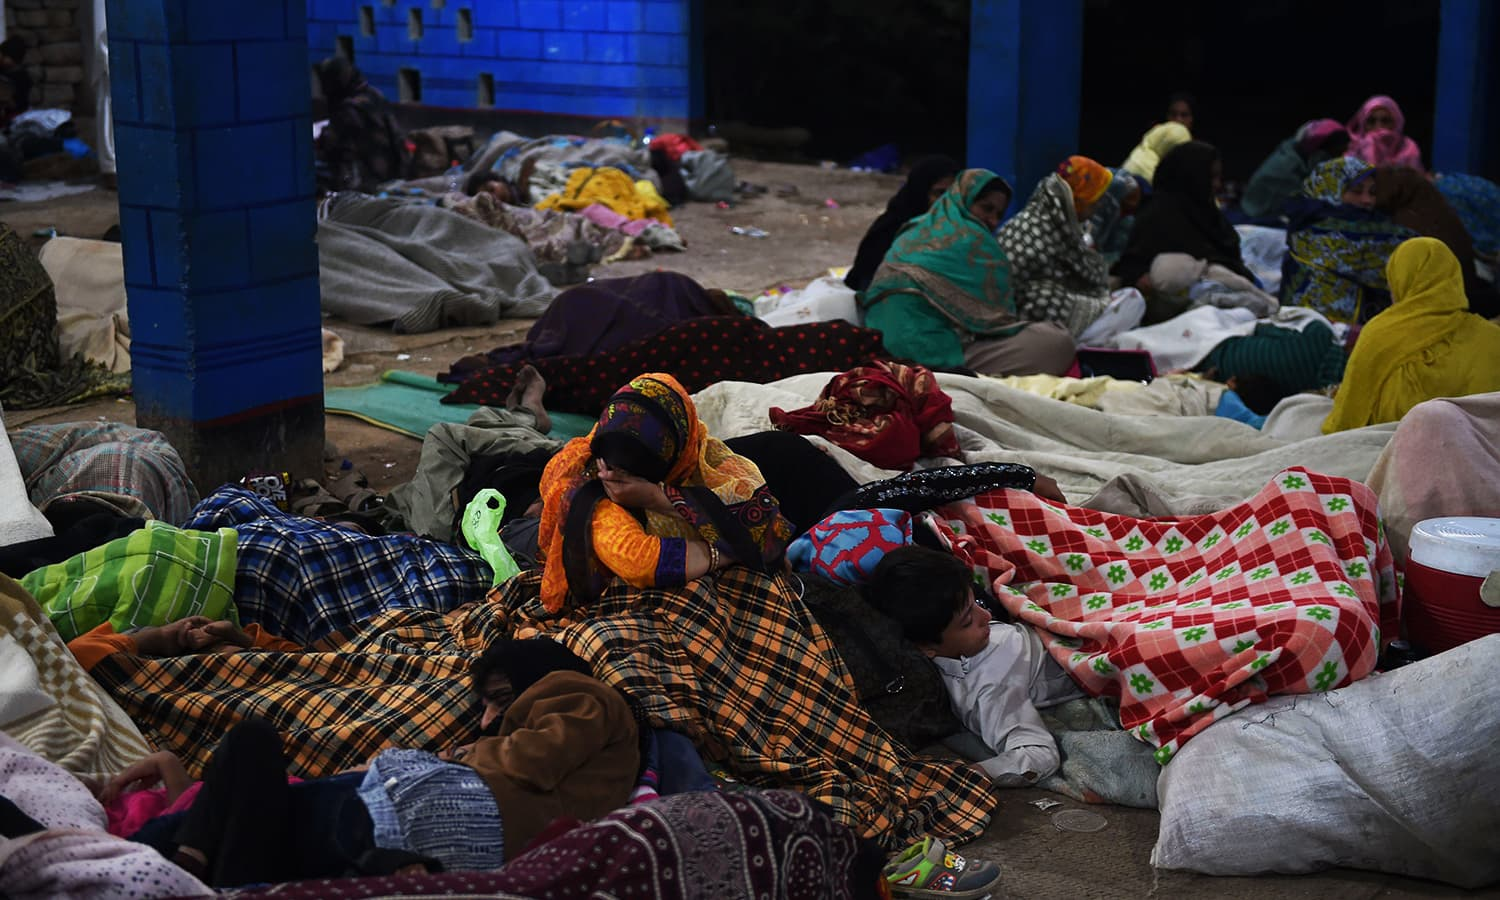 Devotees take shelter after a suicide bomb attack near the shrine of Sufi saint Shah Noorani. ─ AFP